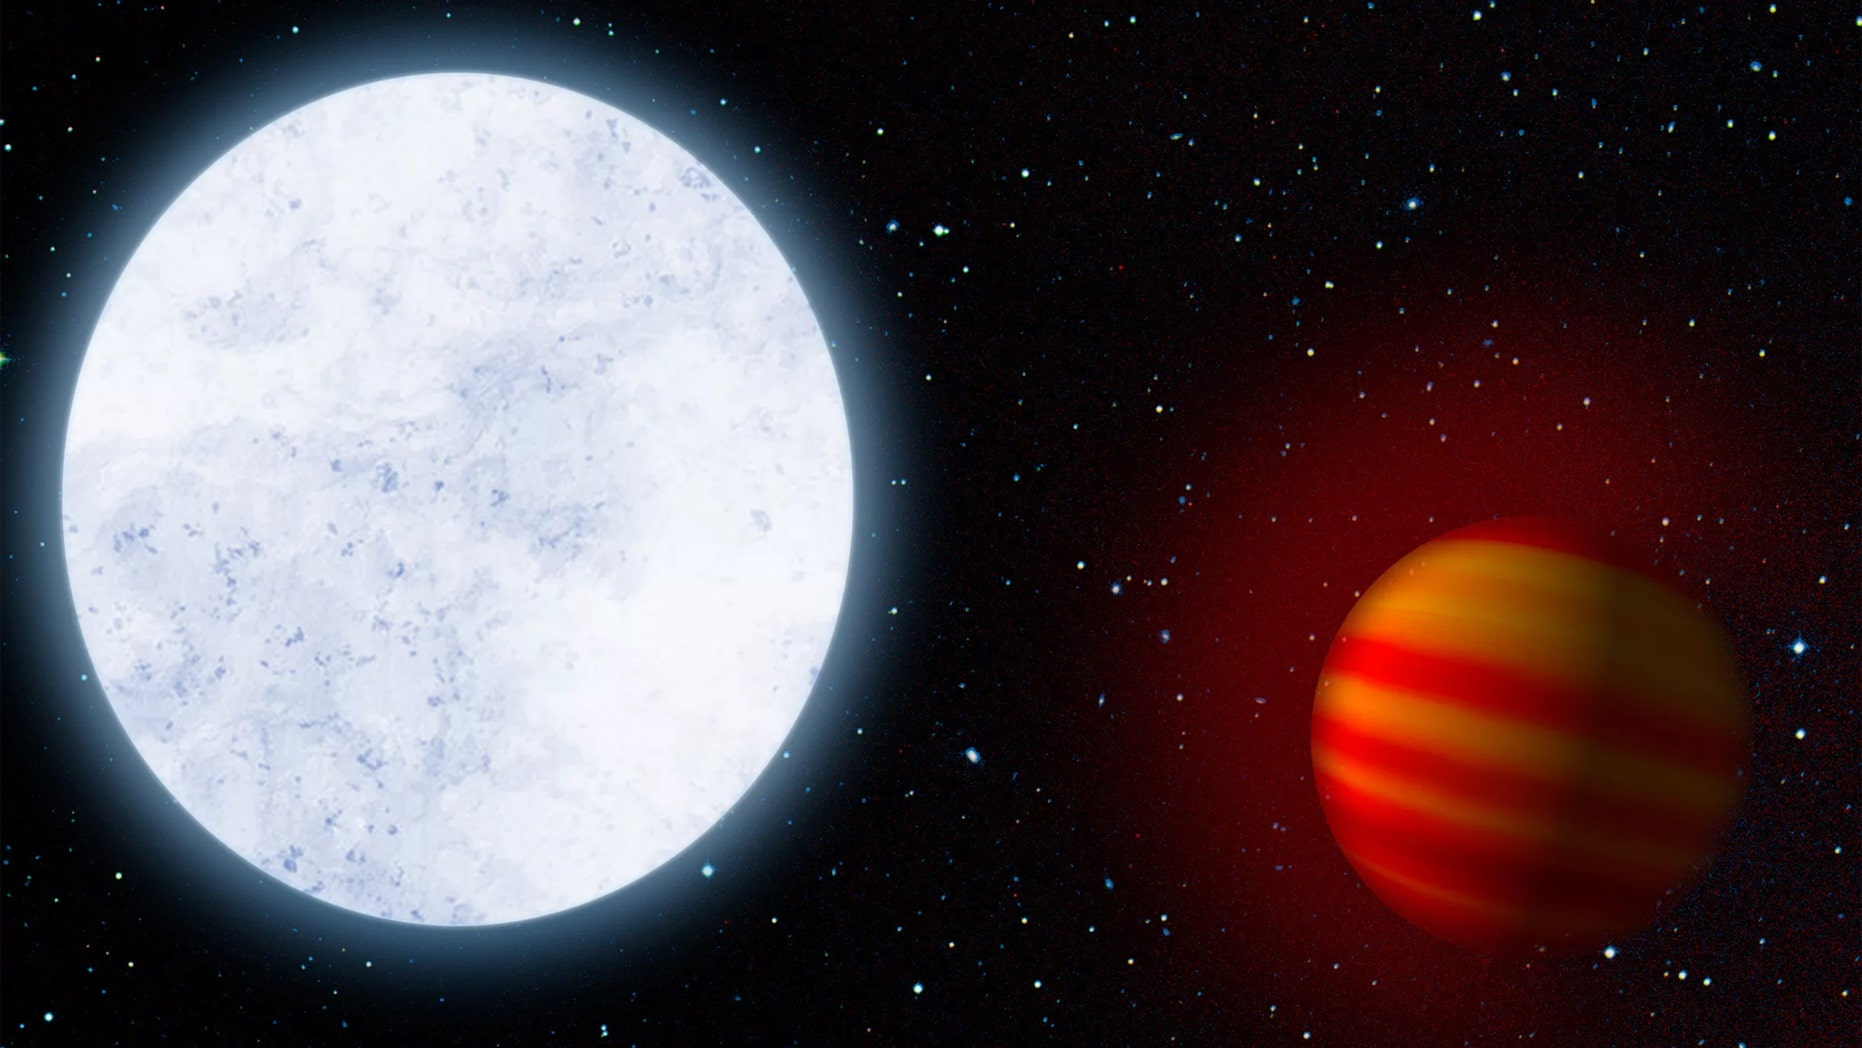 Artist's impression of the star KELT-9 and its planet KELT-9b, the hottest known exoplanet Credit: MPIA